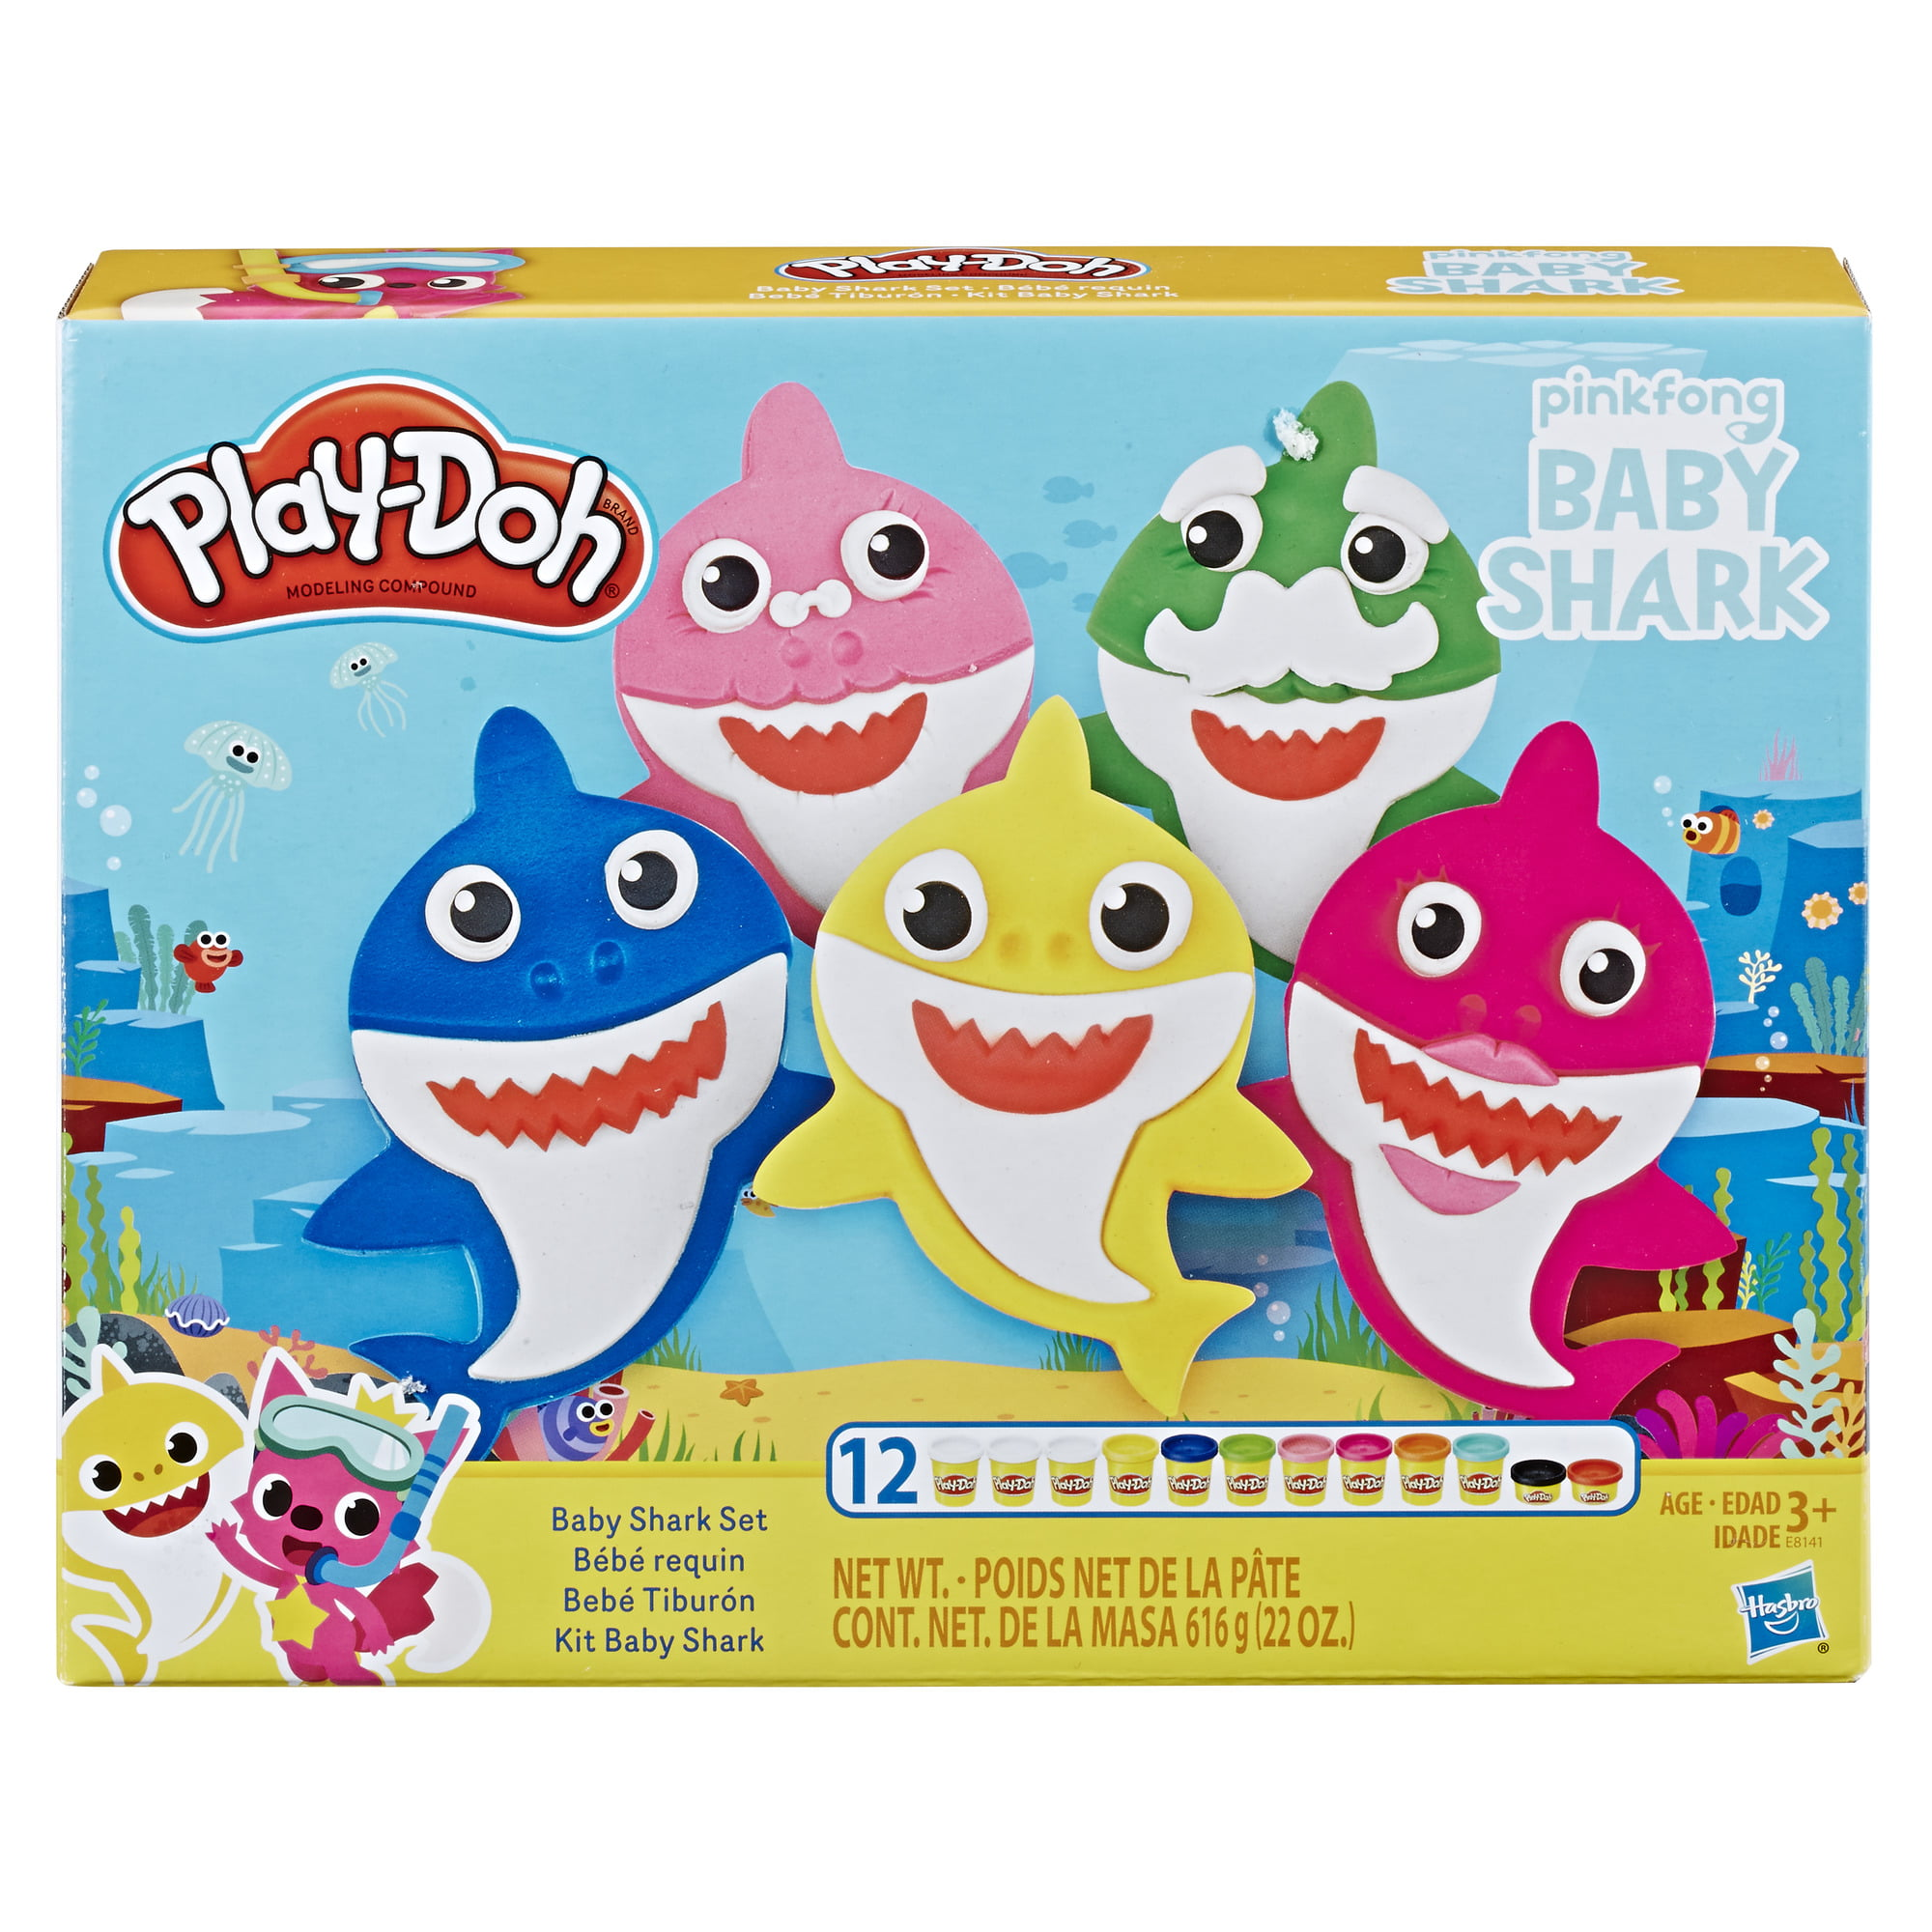 Play Doh Pinkfong Baby Shark Set With 12 Play Doh Cans And 21 Tools Walmart Com